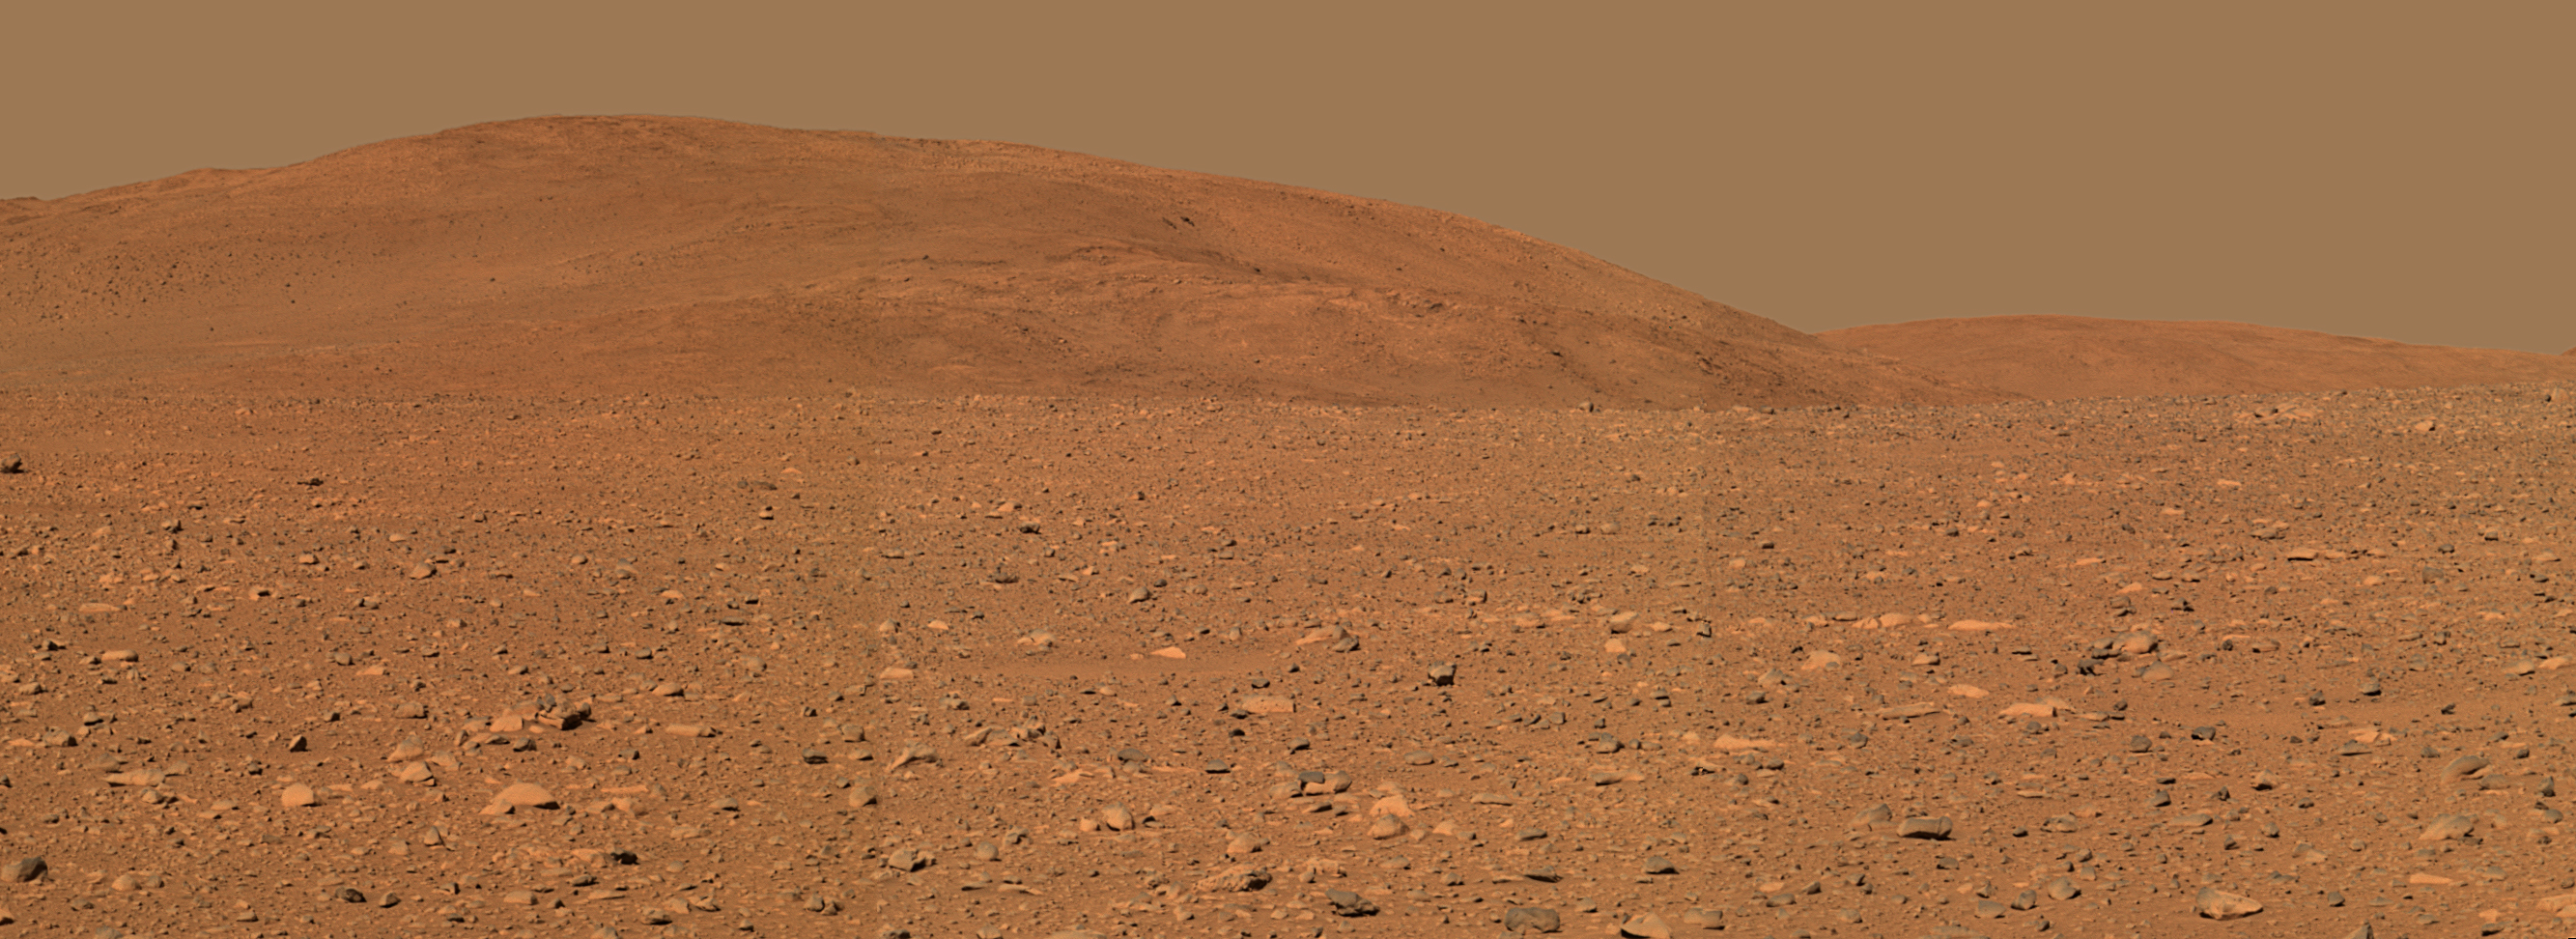 curiosity rover color - photo #22